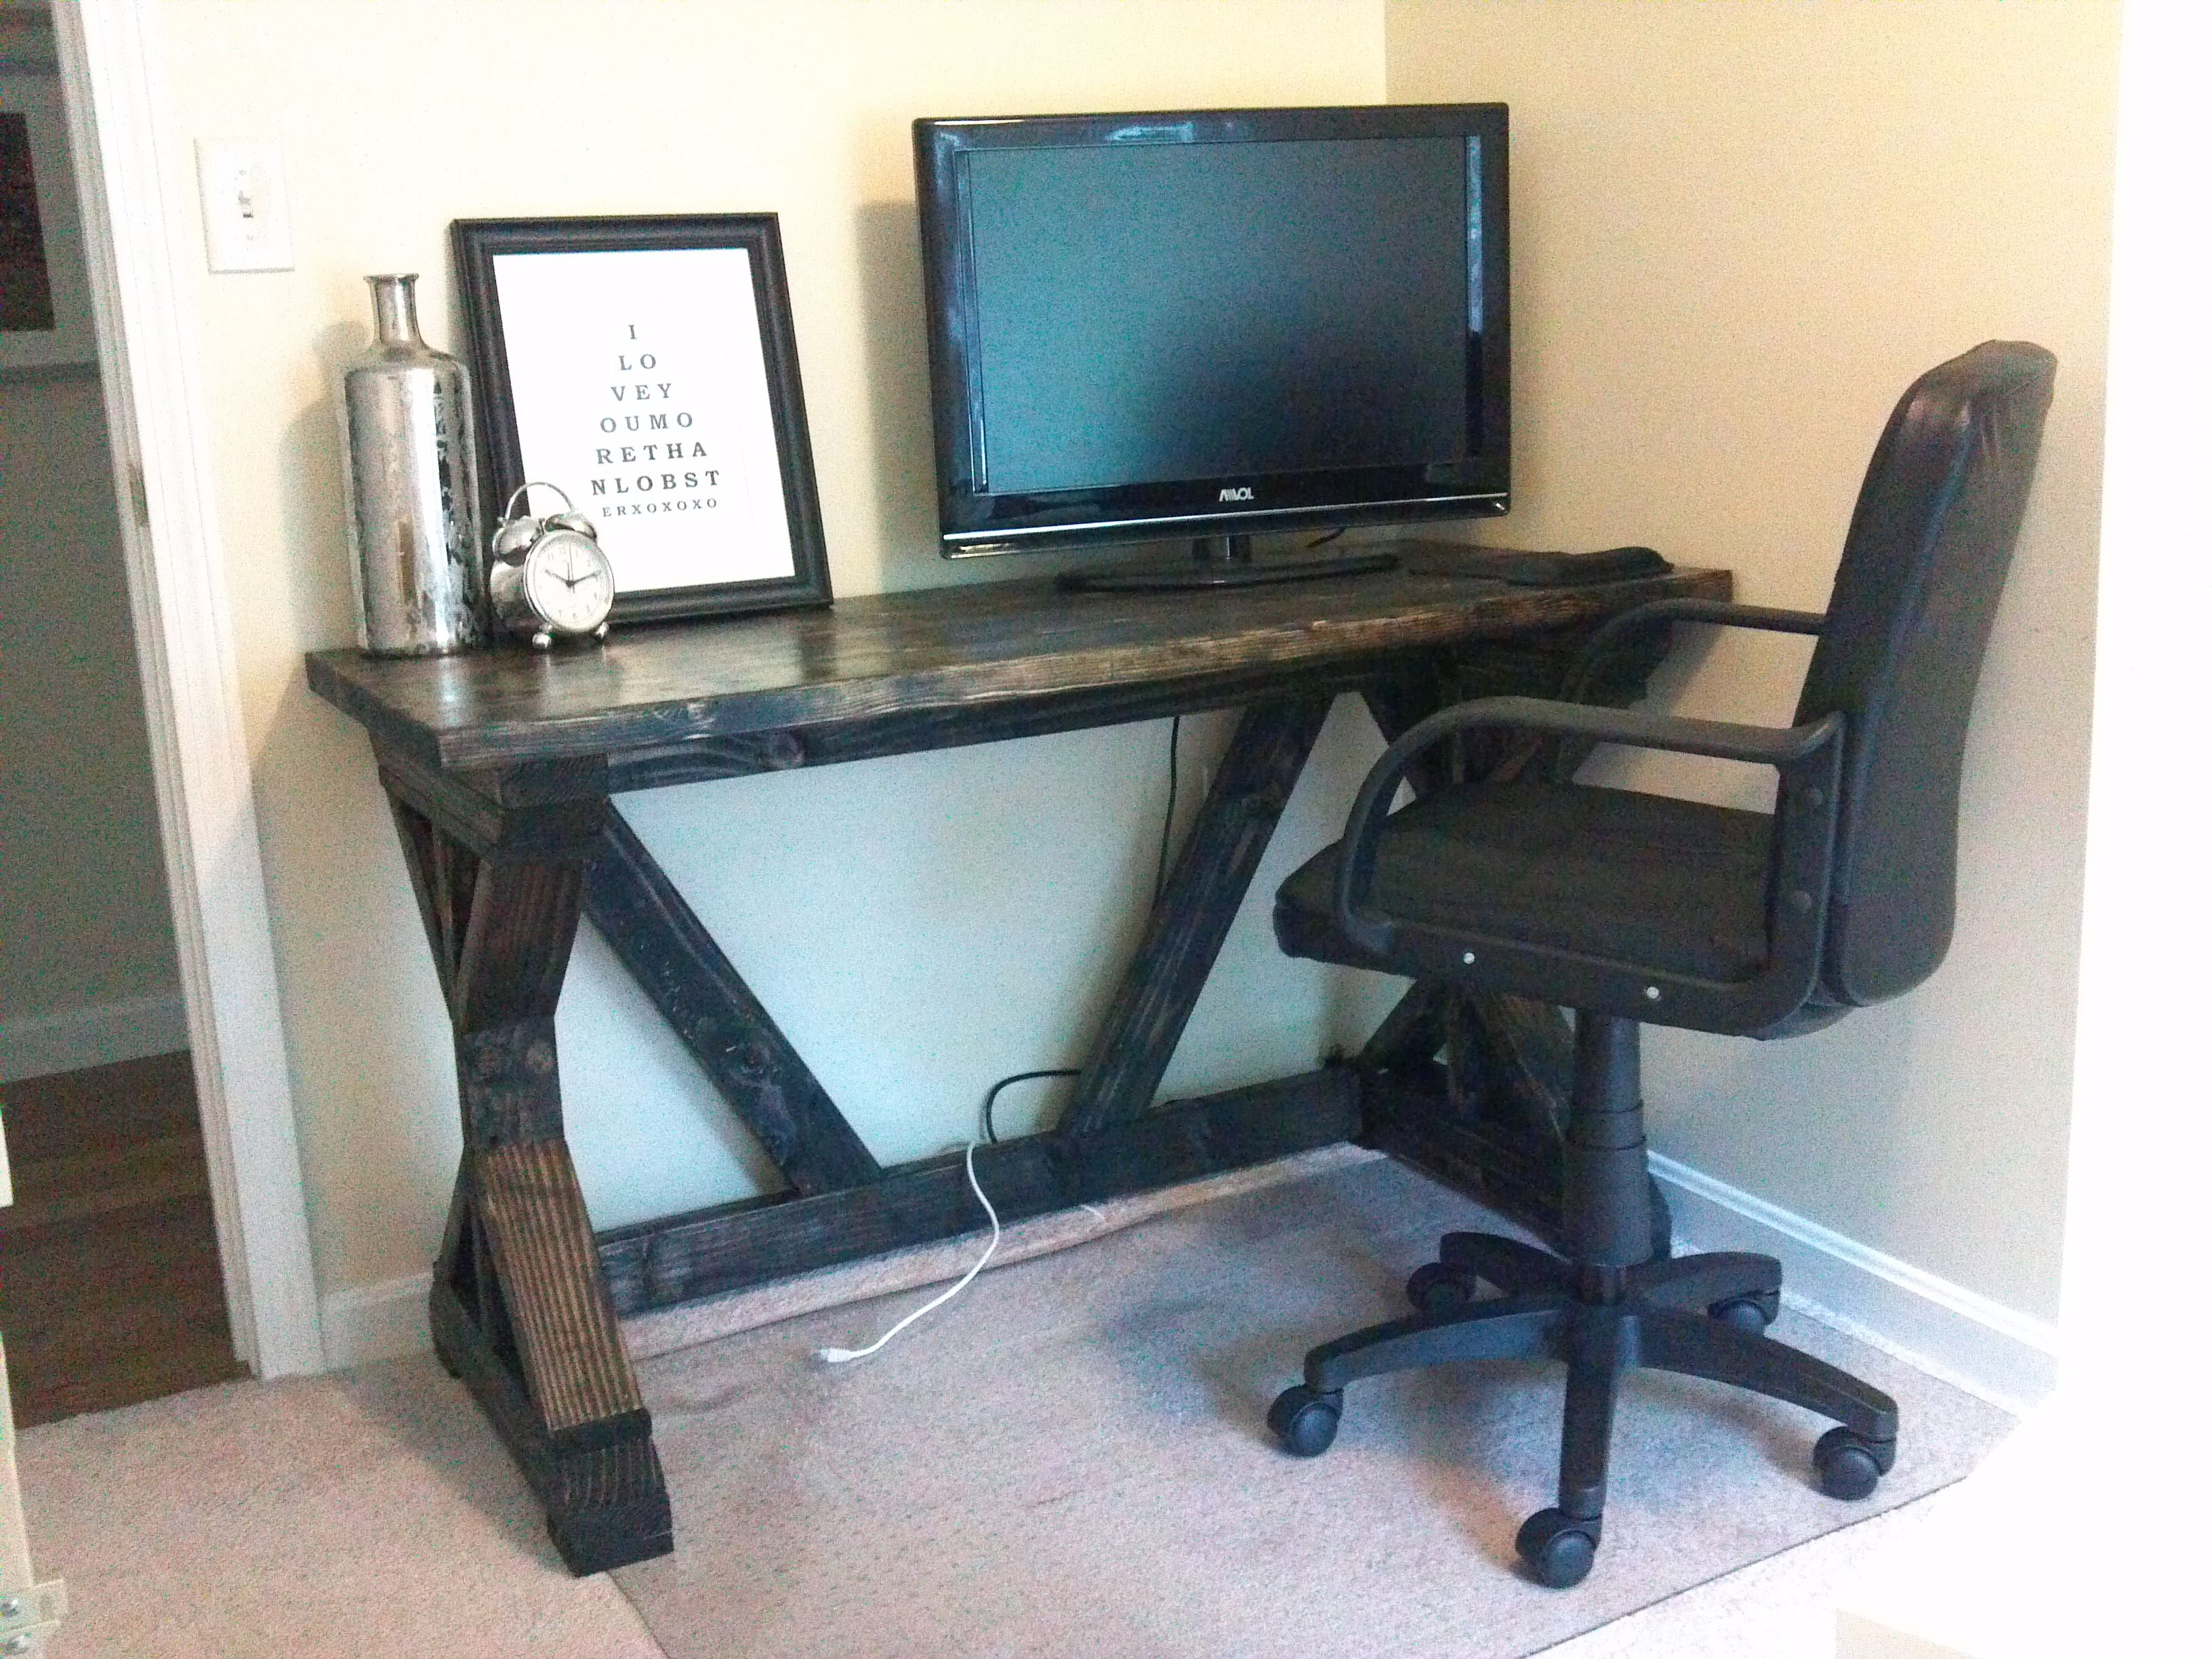 Fancy x desk do it yourself home projects from ana white love this fancy x desk do it yourself home projects from ana white love this website solutioingenieria Image collections